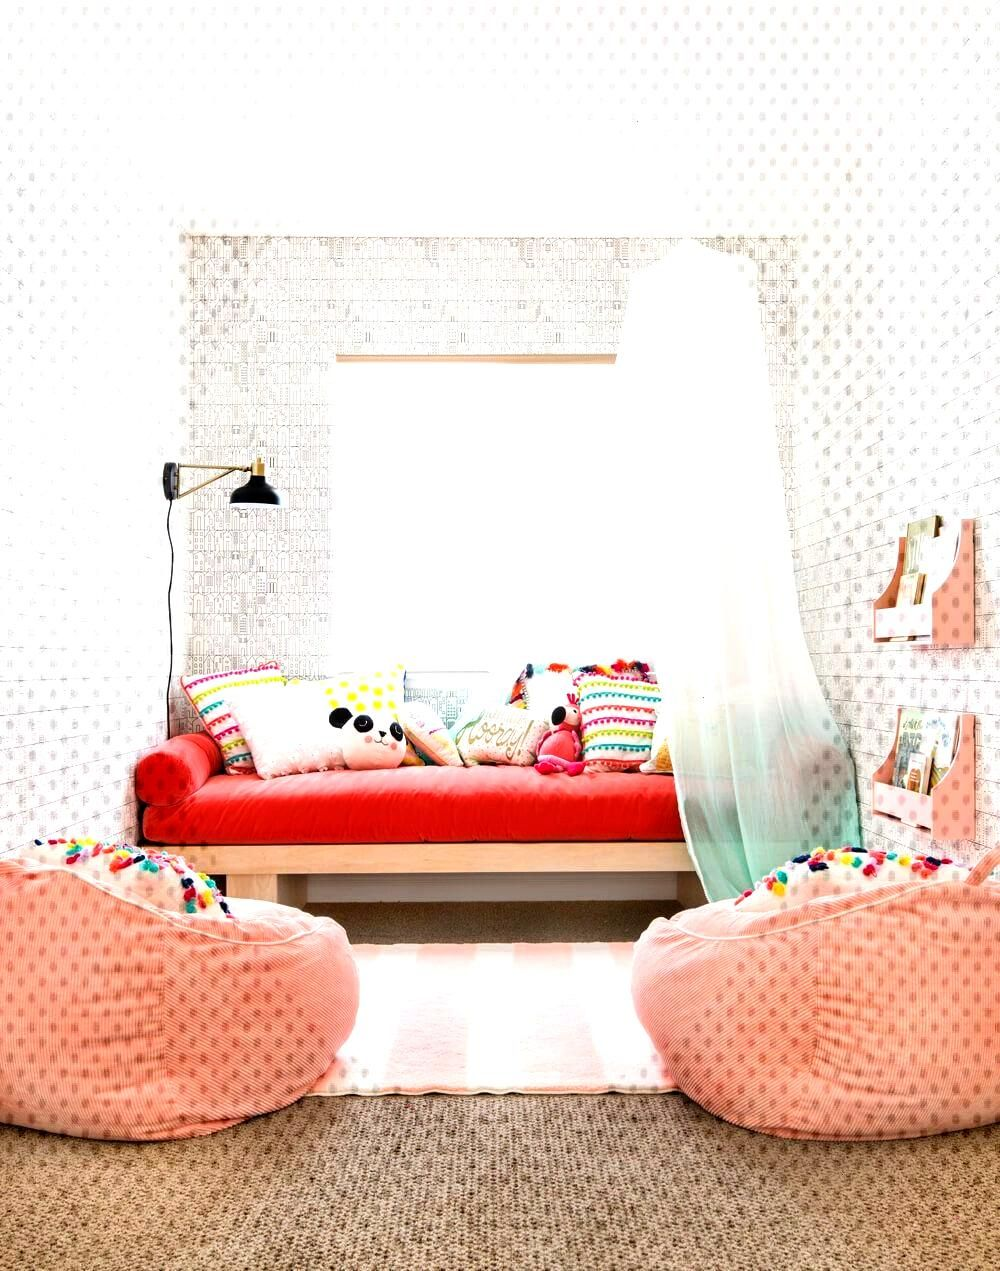 Playroom Makeover with PillowFort + Shop The Collection - Emily Henderson - Sugar and Spice - Playr